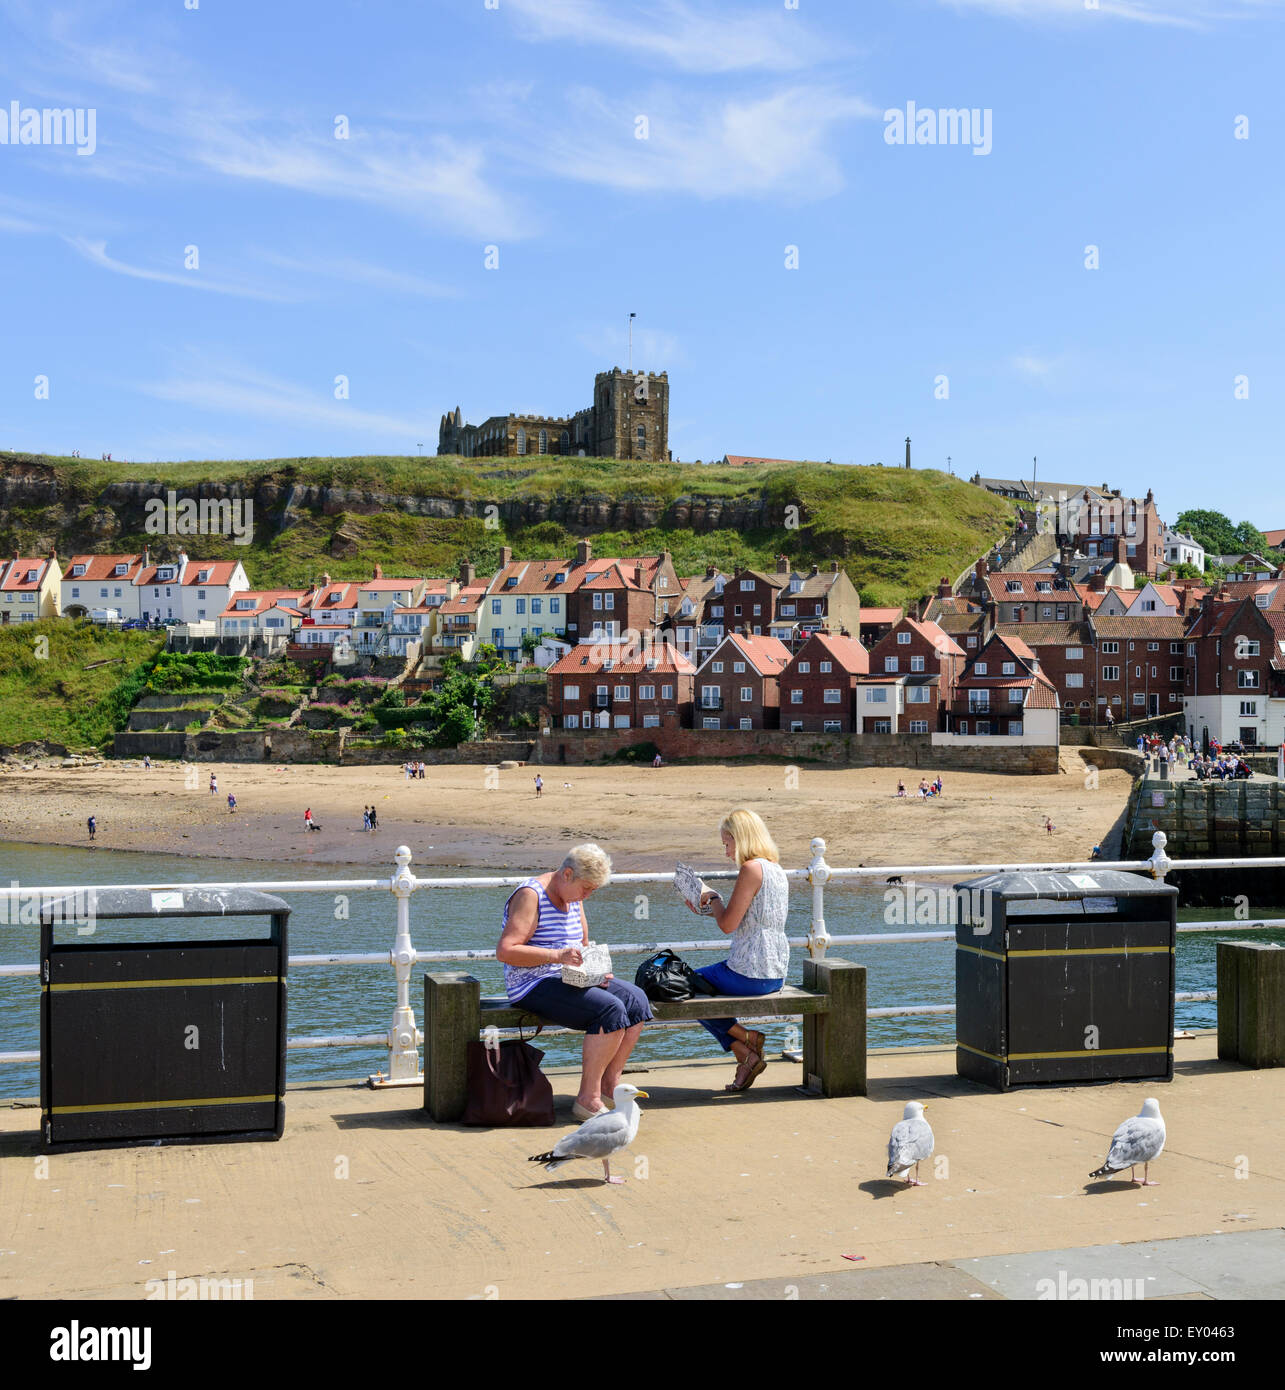 Whitby Seafront - Stock Image